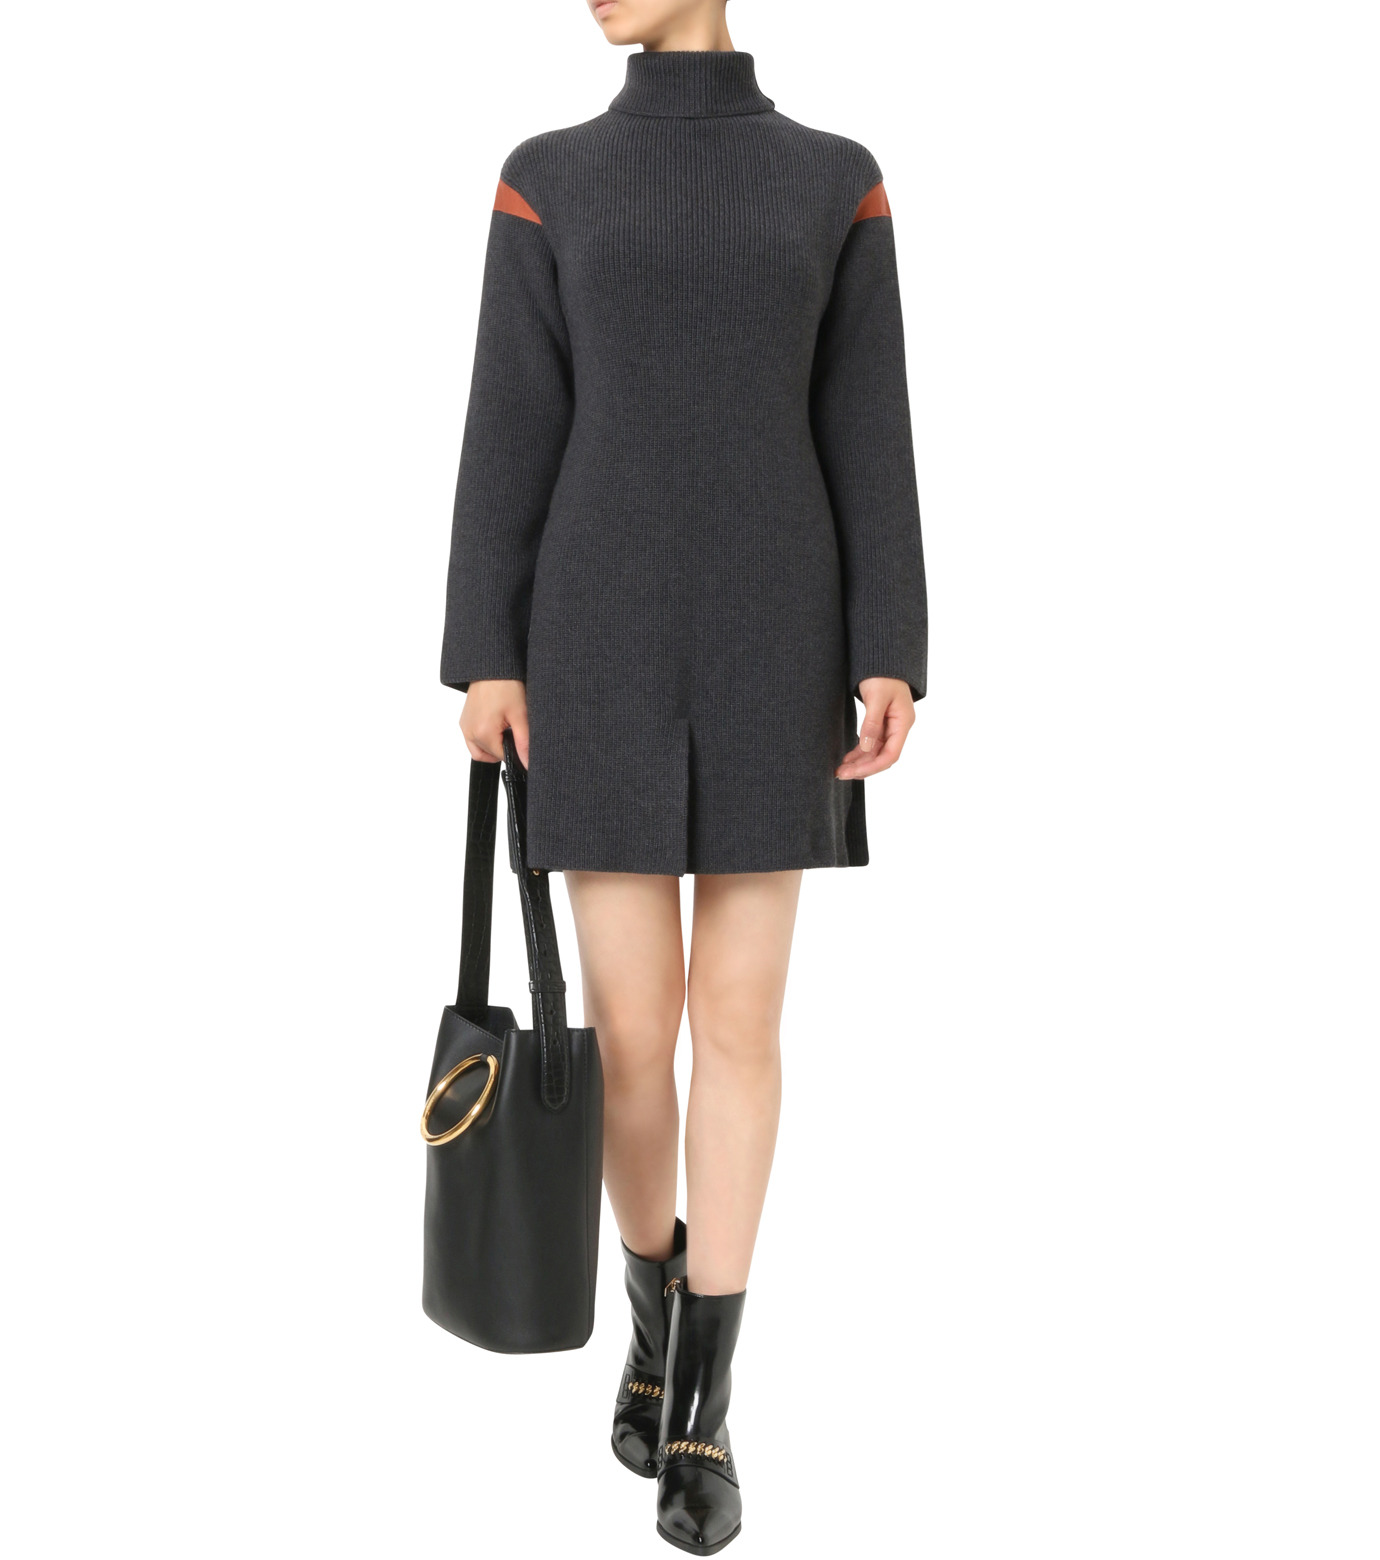 Stella McCartney(ステラマッカートニー)のClean Ribs Turtleneck Dress-CHARCHOL GRAY(ニット/knit)-427388-S1672-12 拡大詳細画像1